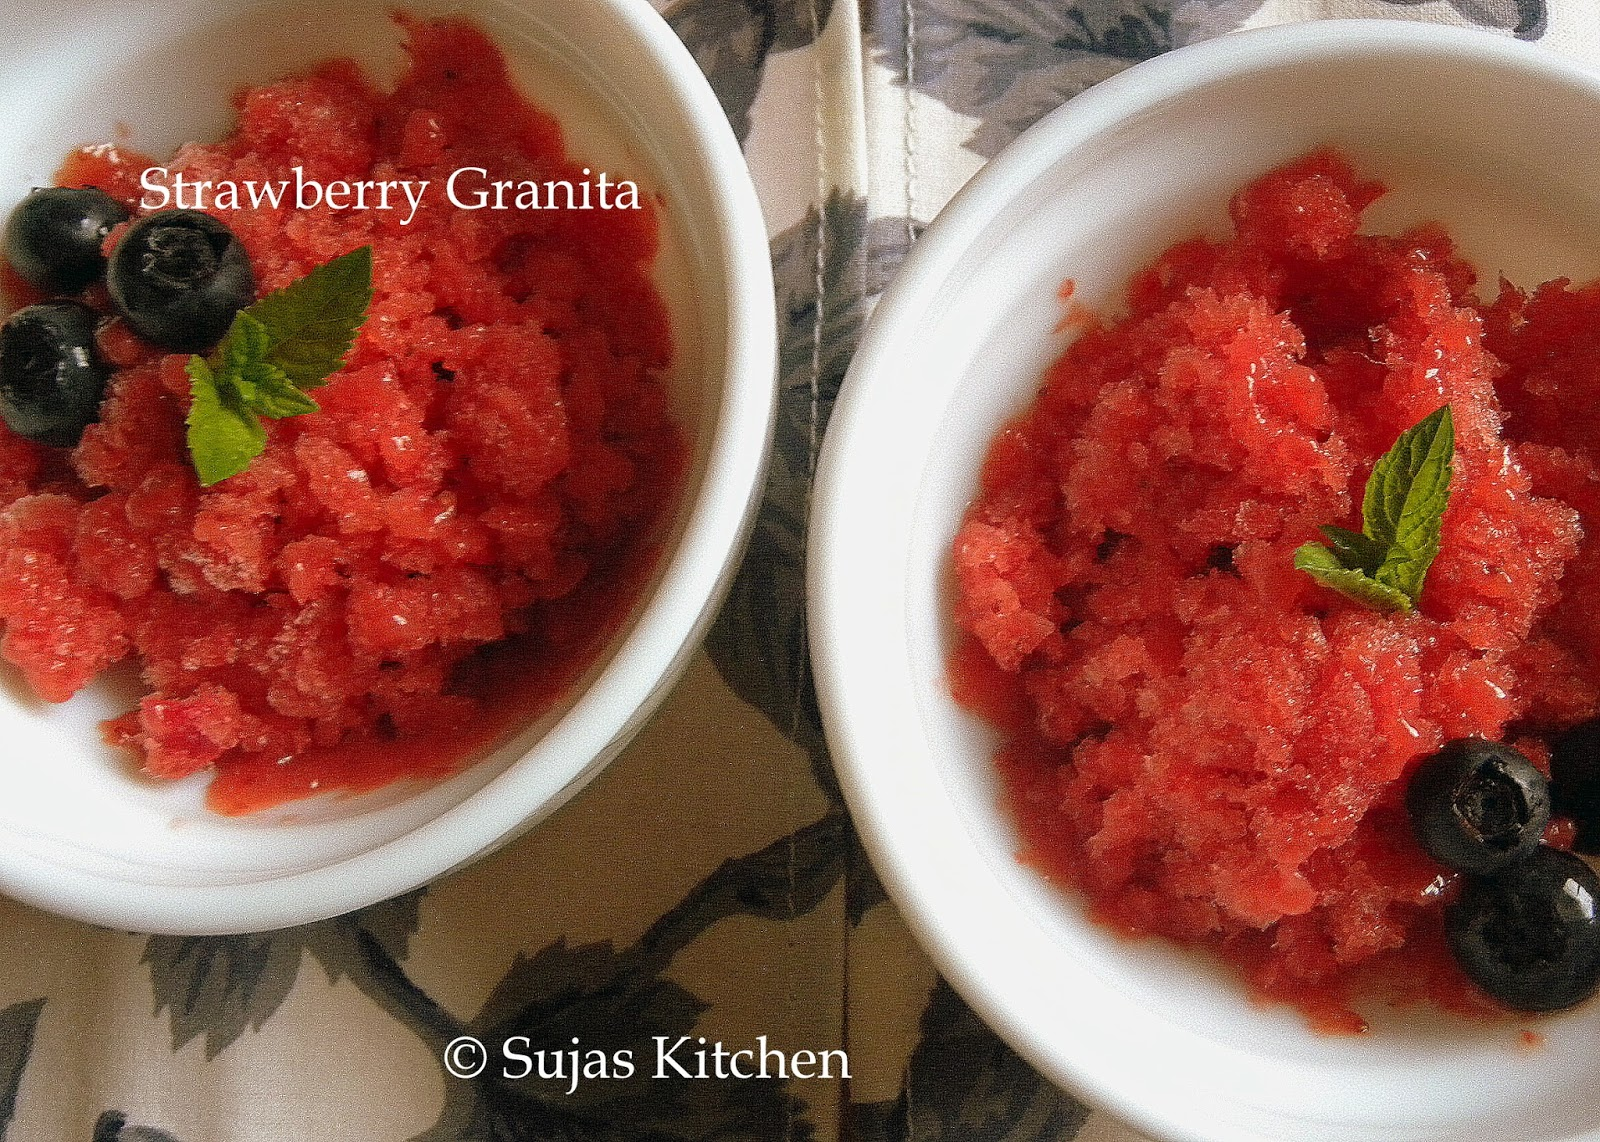 Sujas Kitchen: Fresh Strawberry Granita/Popsicle